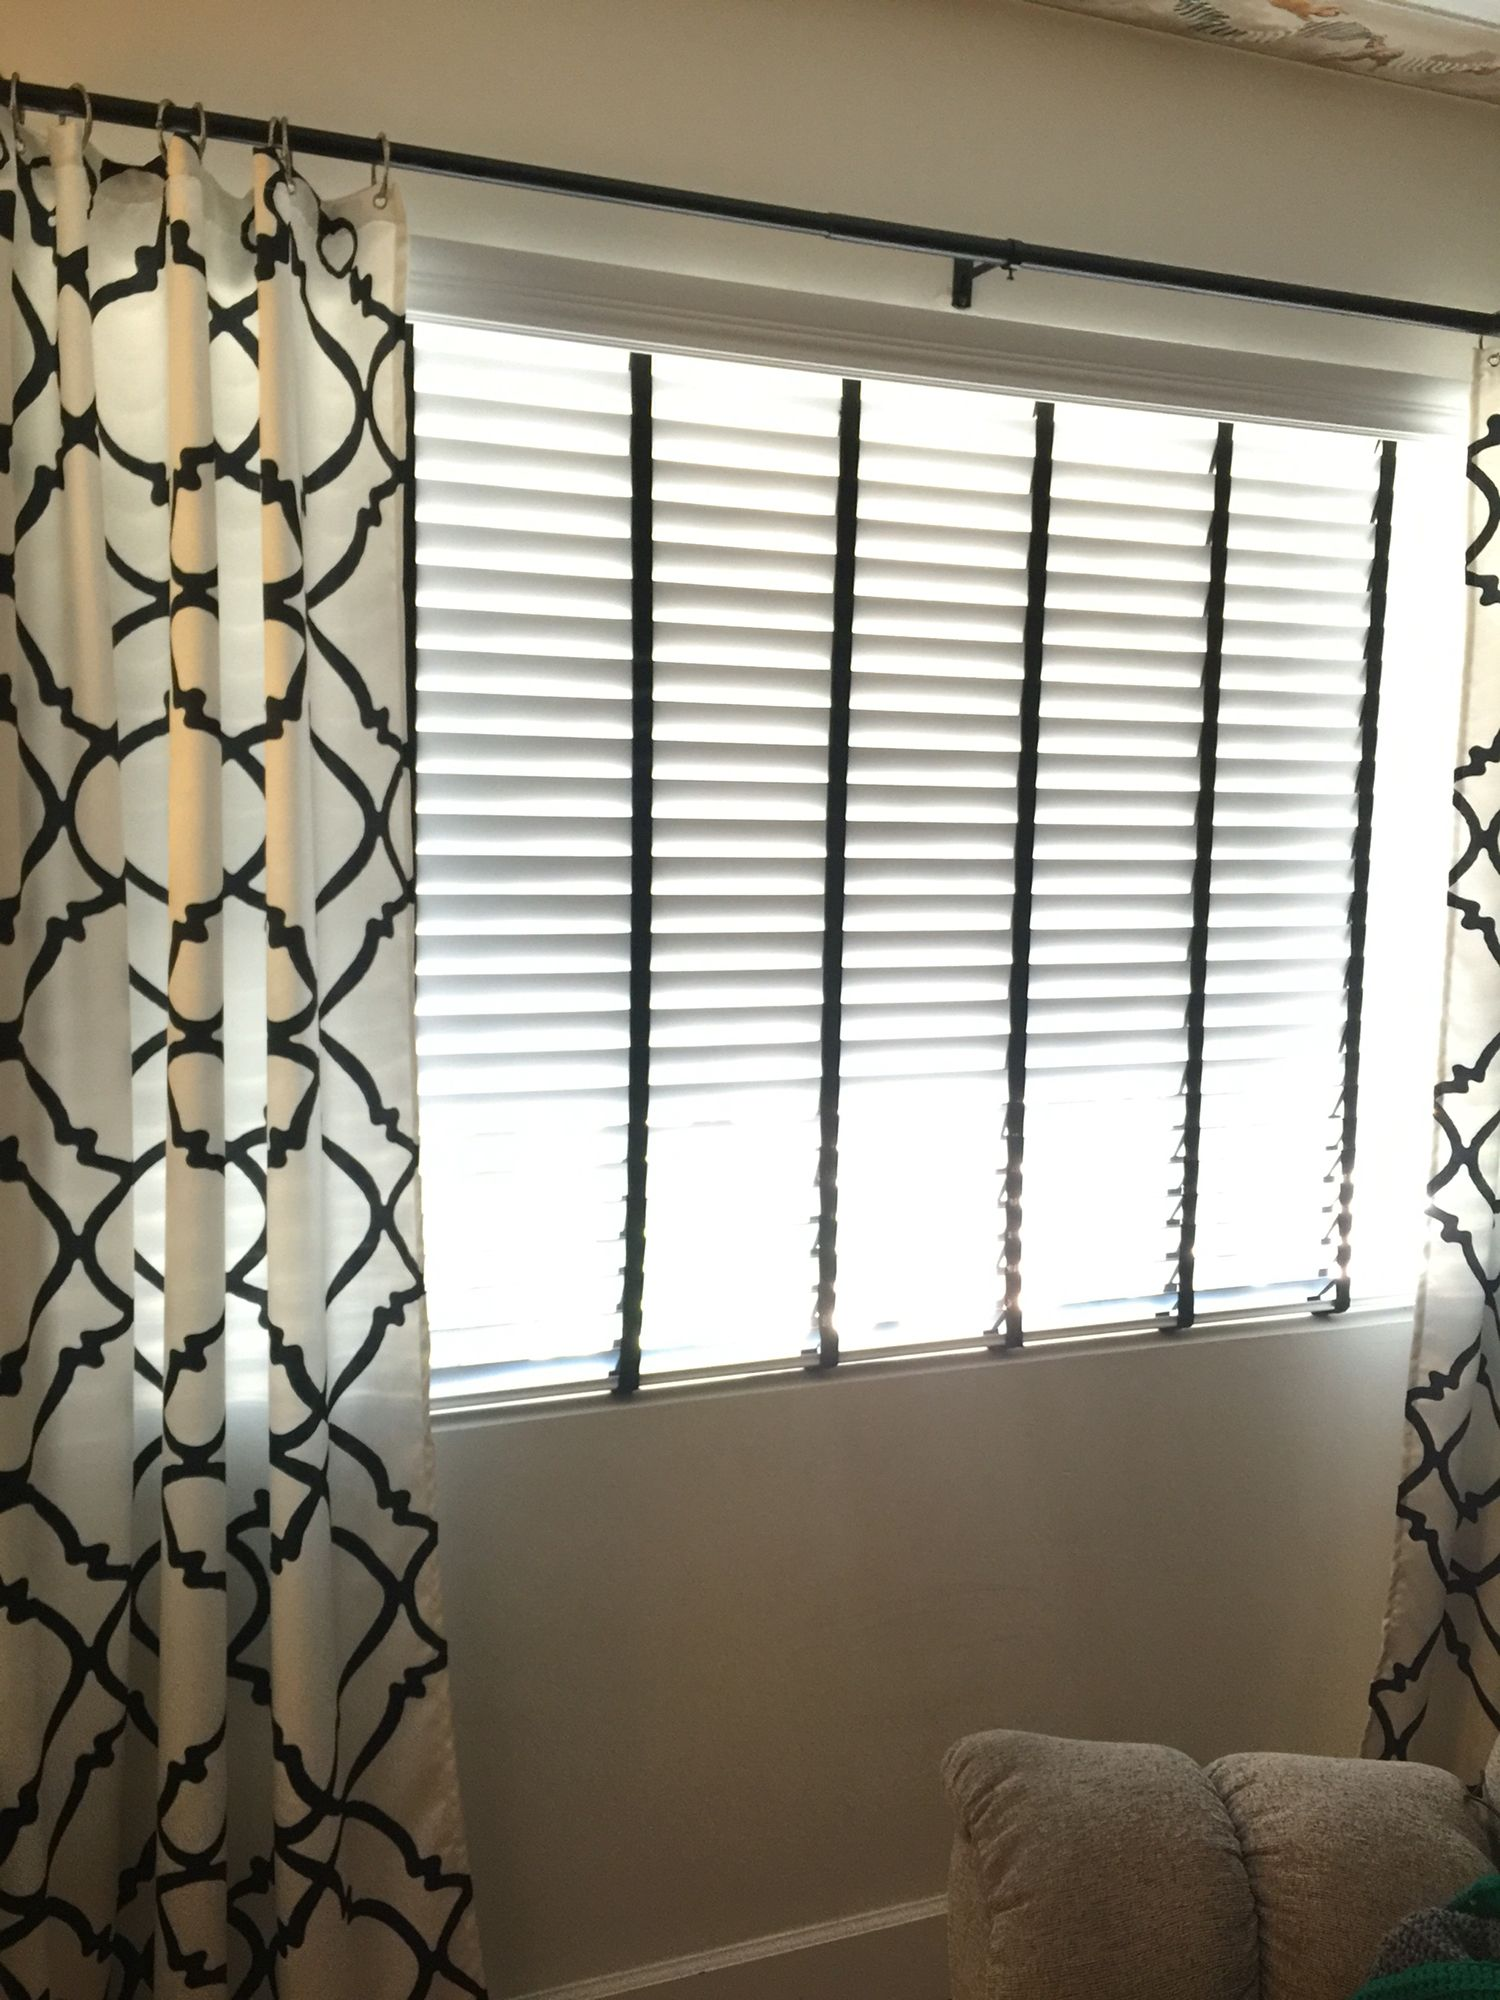 Bali White Faux Wood Blinds With Black Cloth Tape